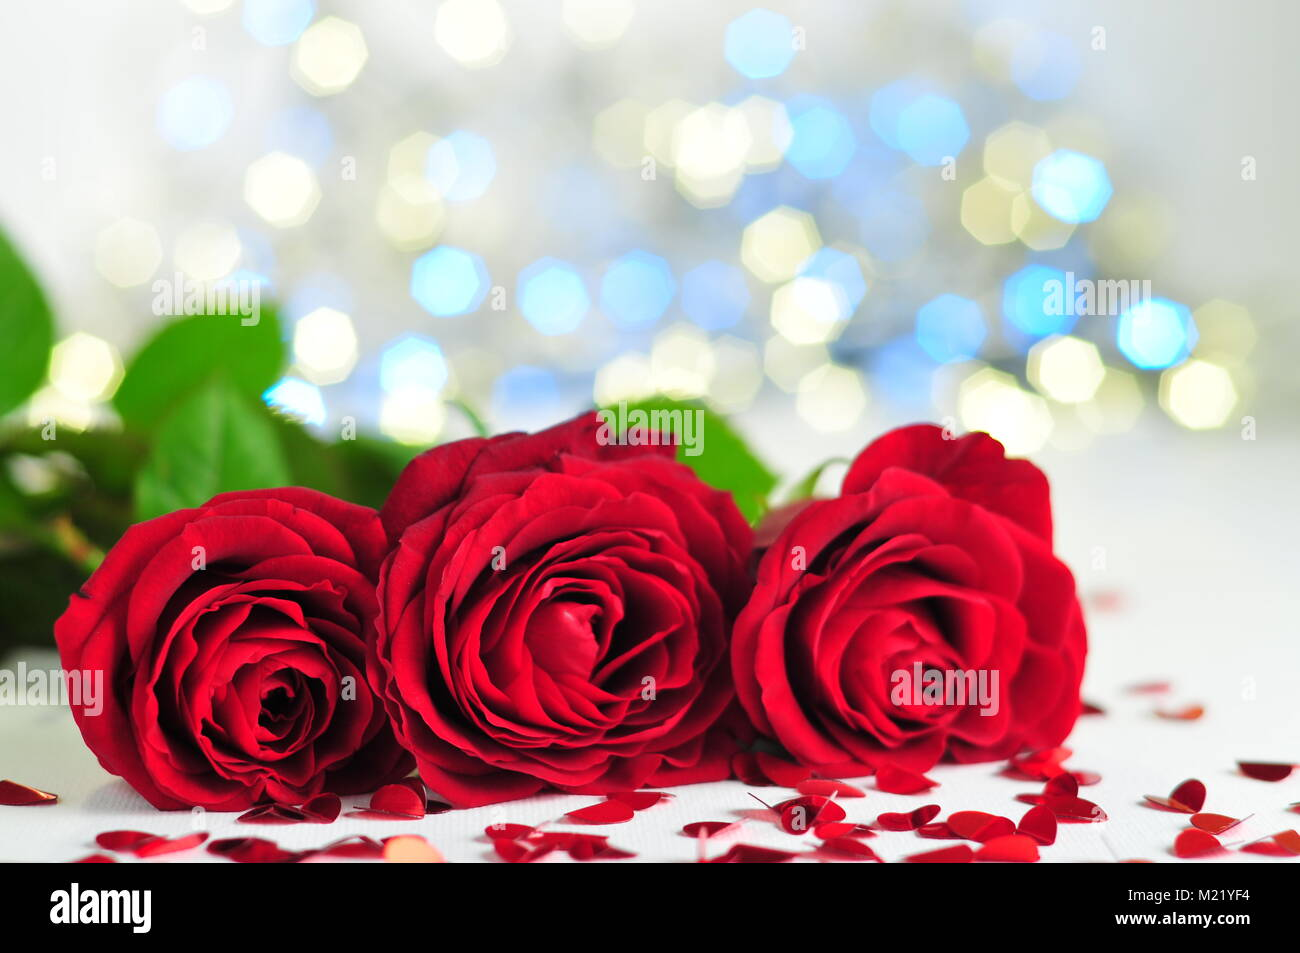 red hearts a row stockfotos red hearts a row bilder alamy. Black Bedroom Furniture Sets. Home Design Ideas